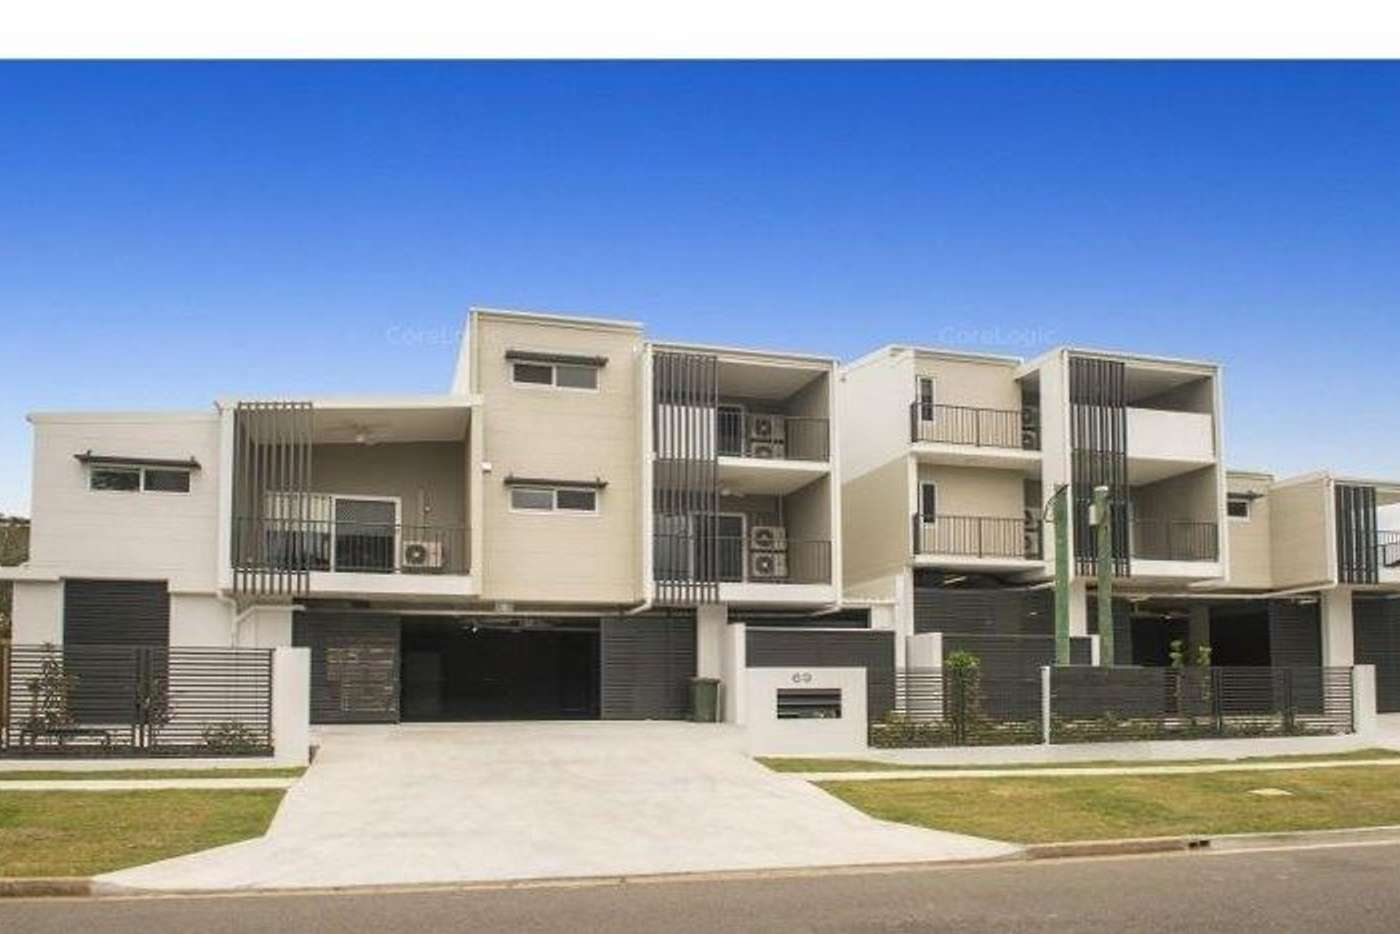 Main view of Homely unit listing, 5/67 Rodway Street, Zillmere QLD 4034